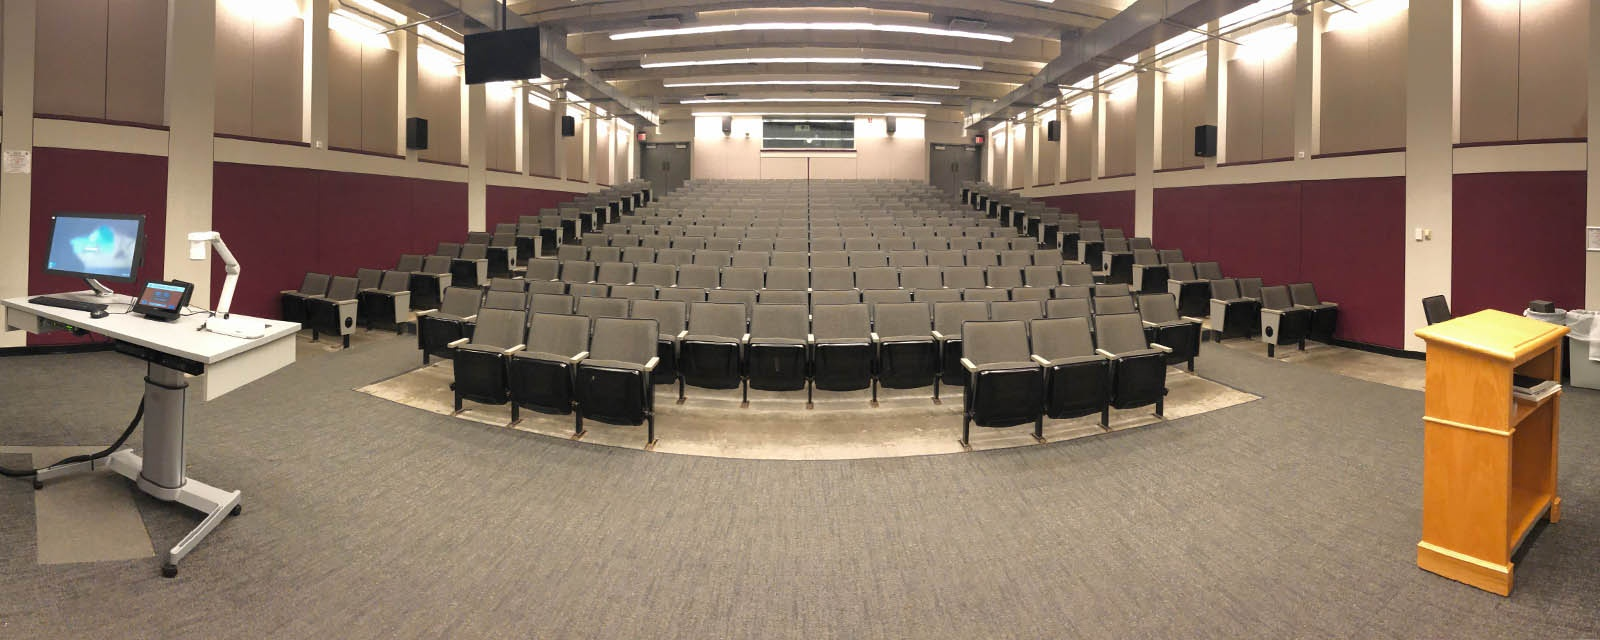 Panorama Shaffer Shemin Auditorium from front of room to back of room, stadium seating, teaching station front left